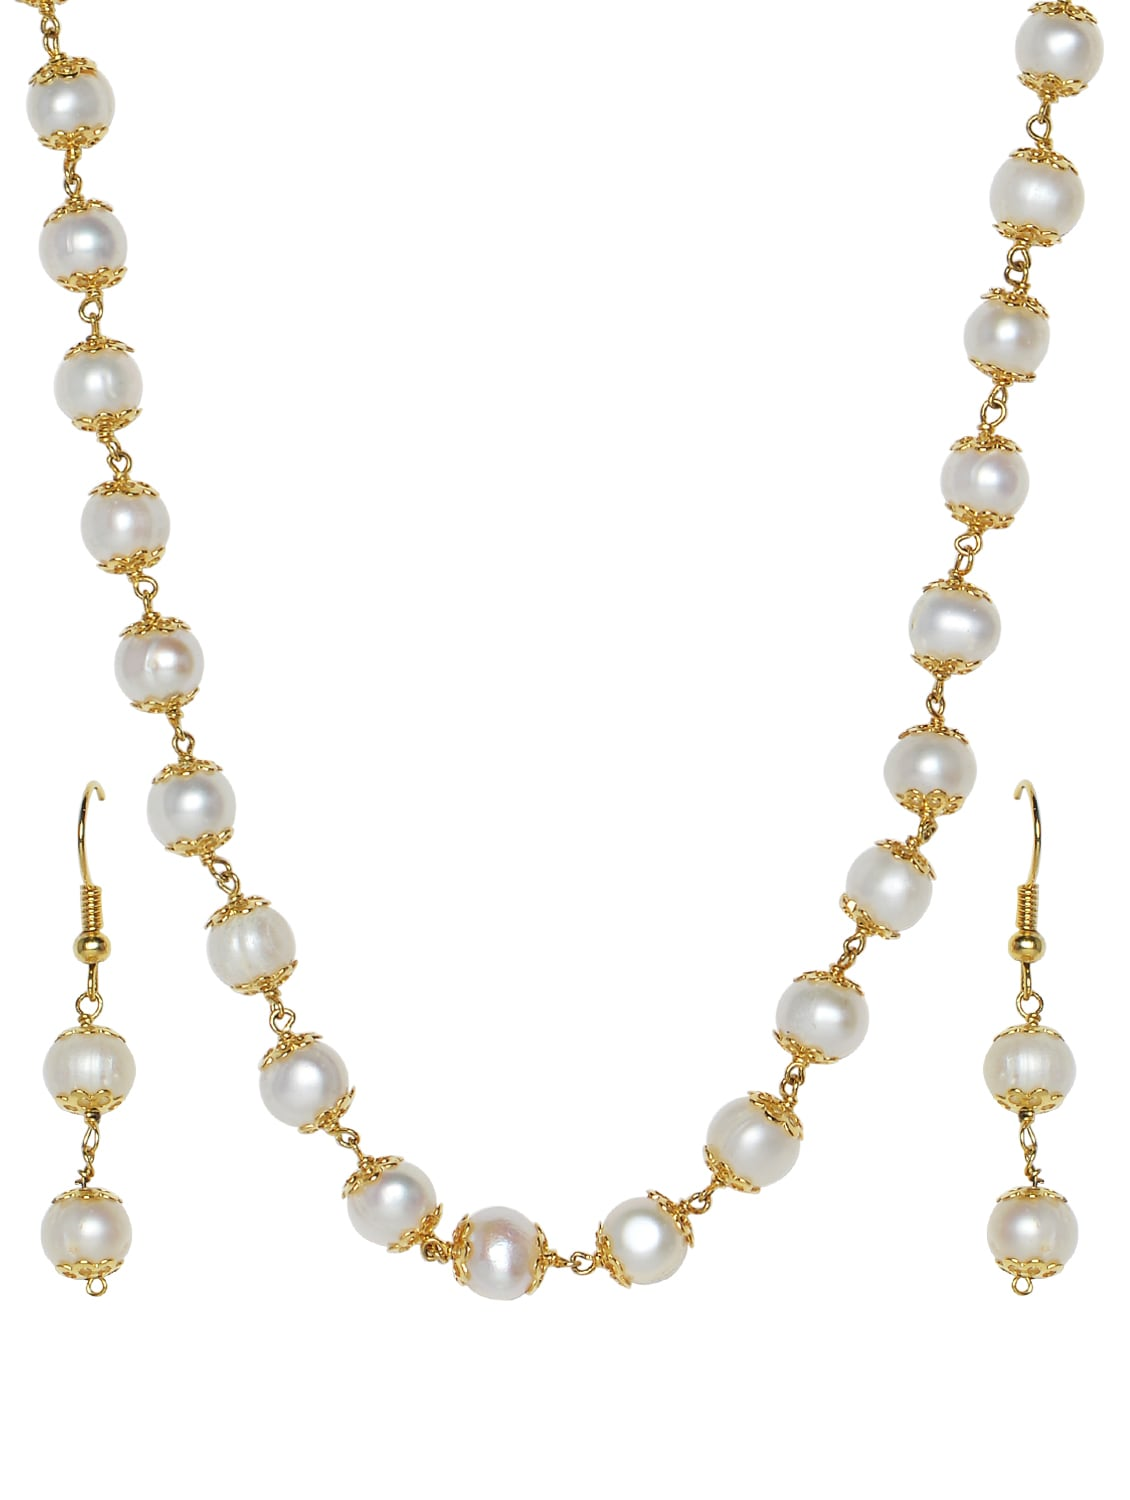 113043dedf88e White Pearl Beads Necklace and Earrings Set